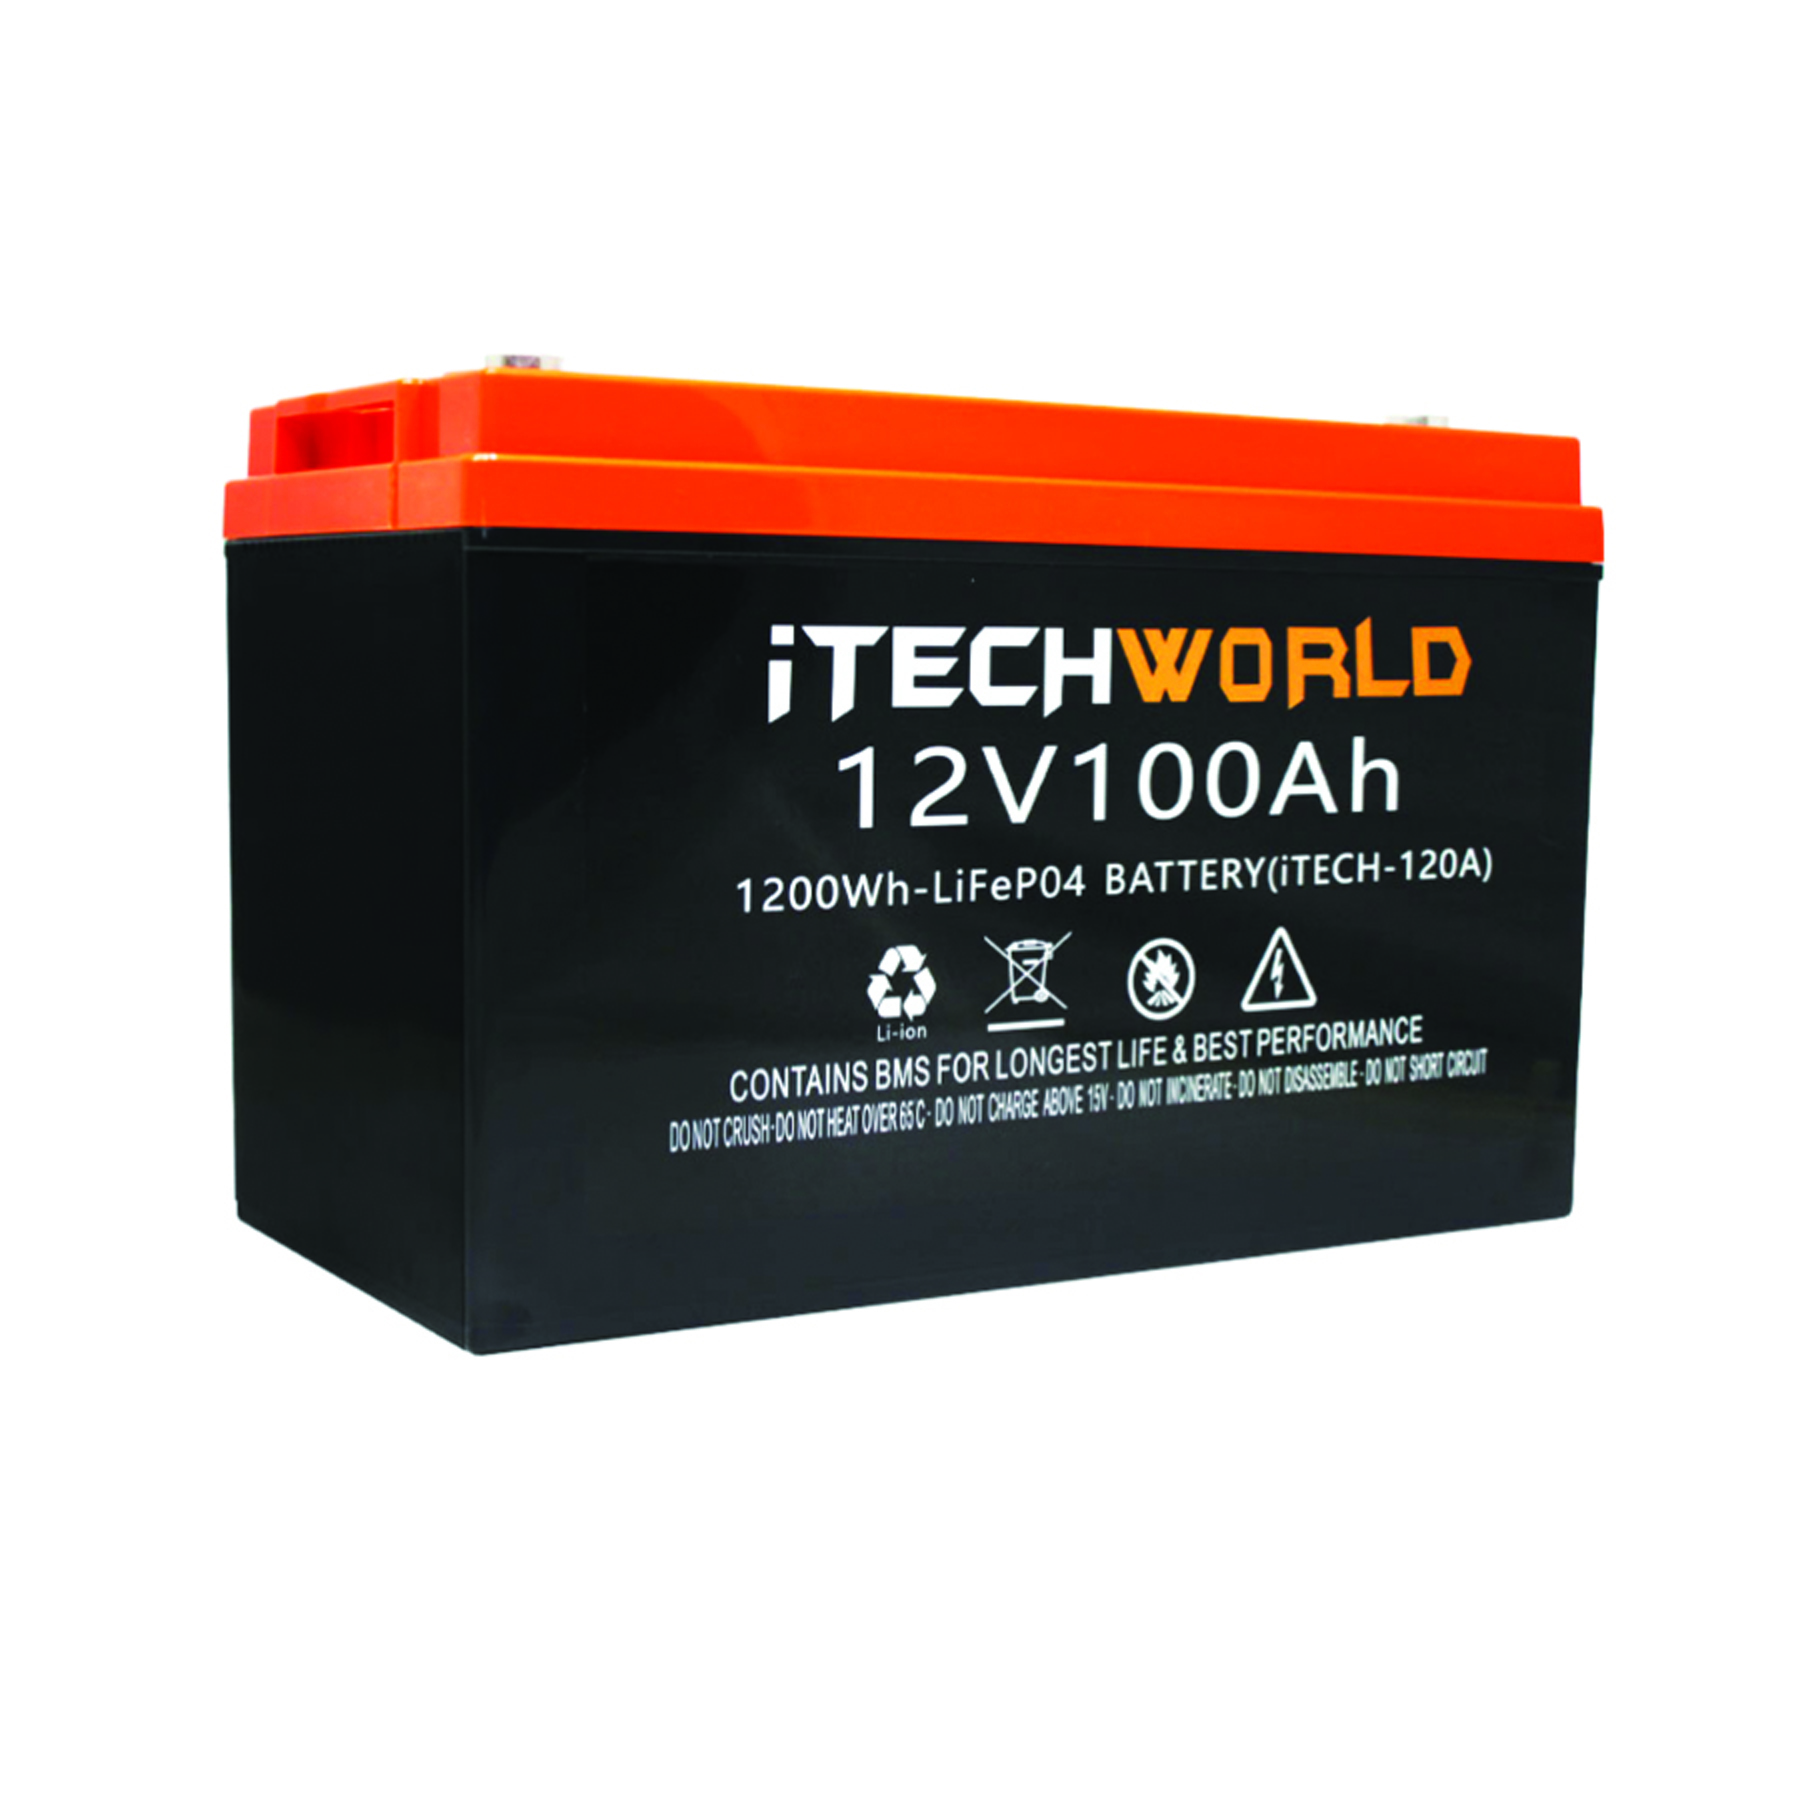 An iTechworld battery in the current range